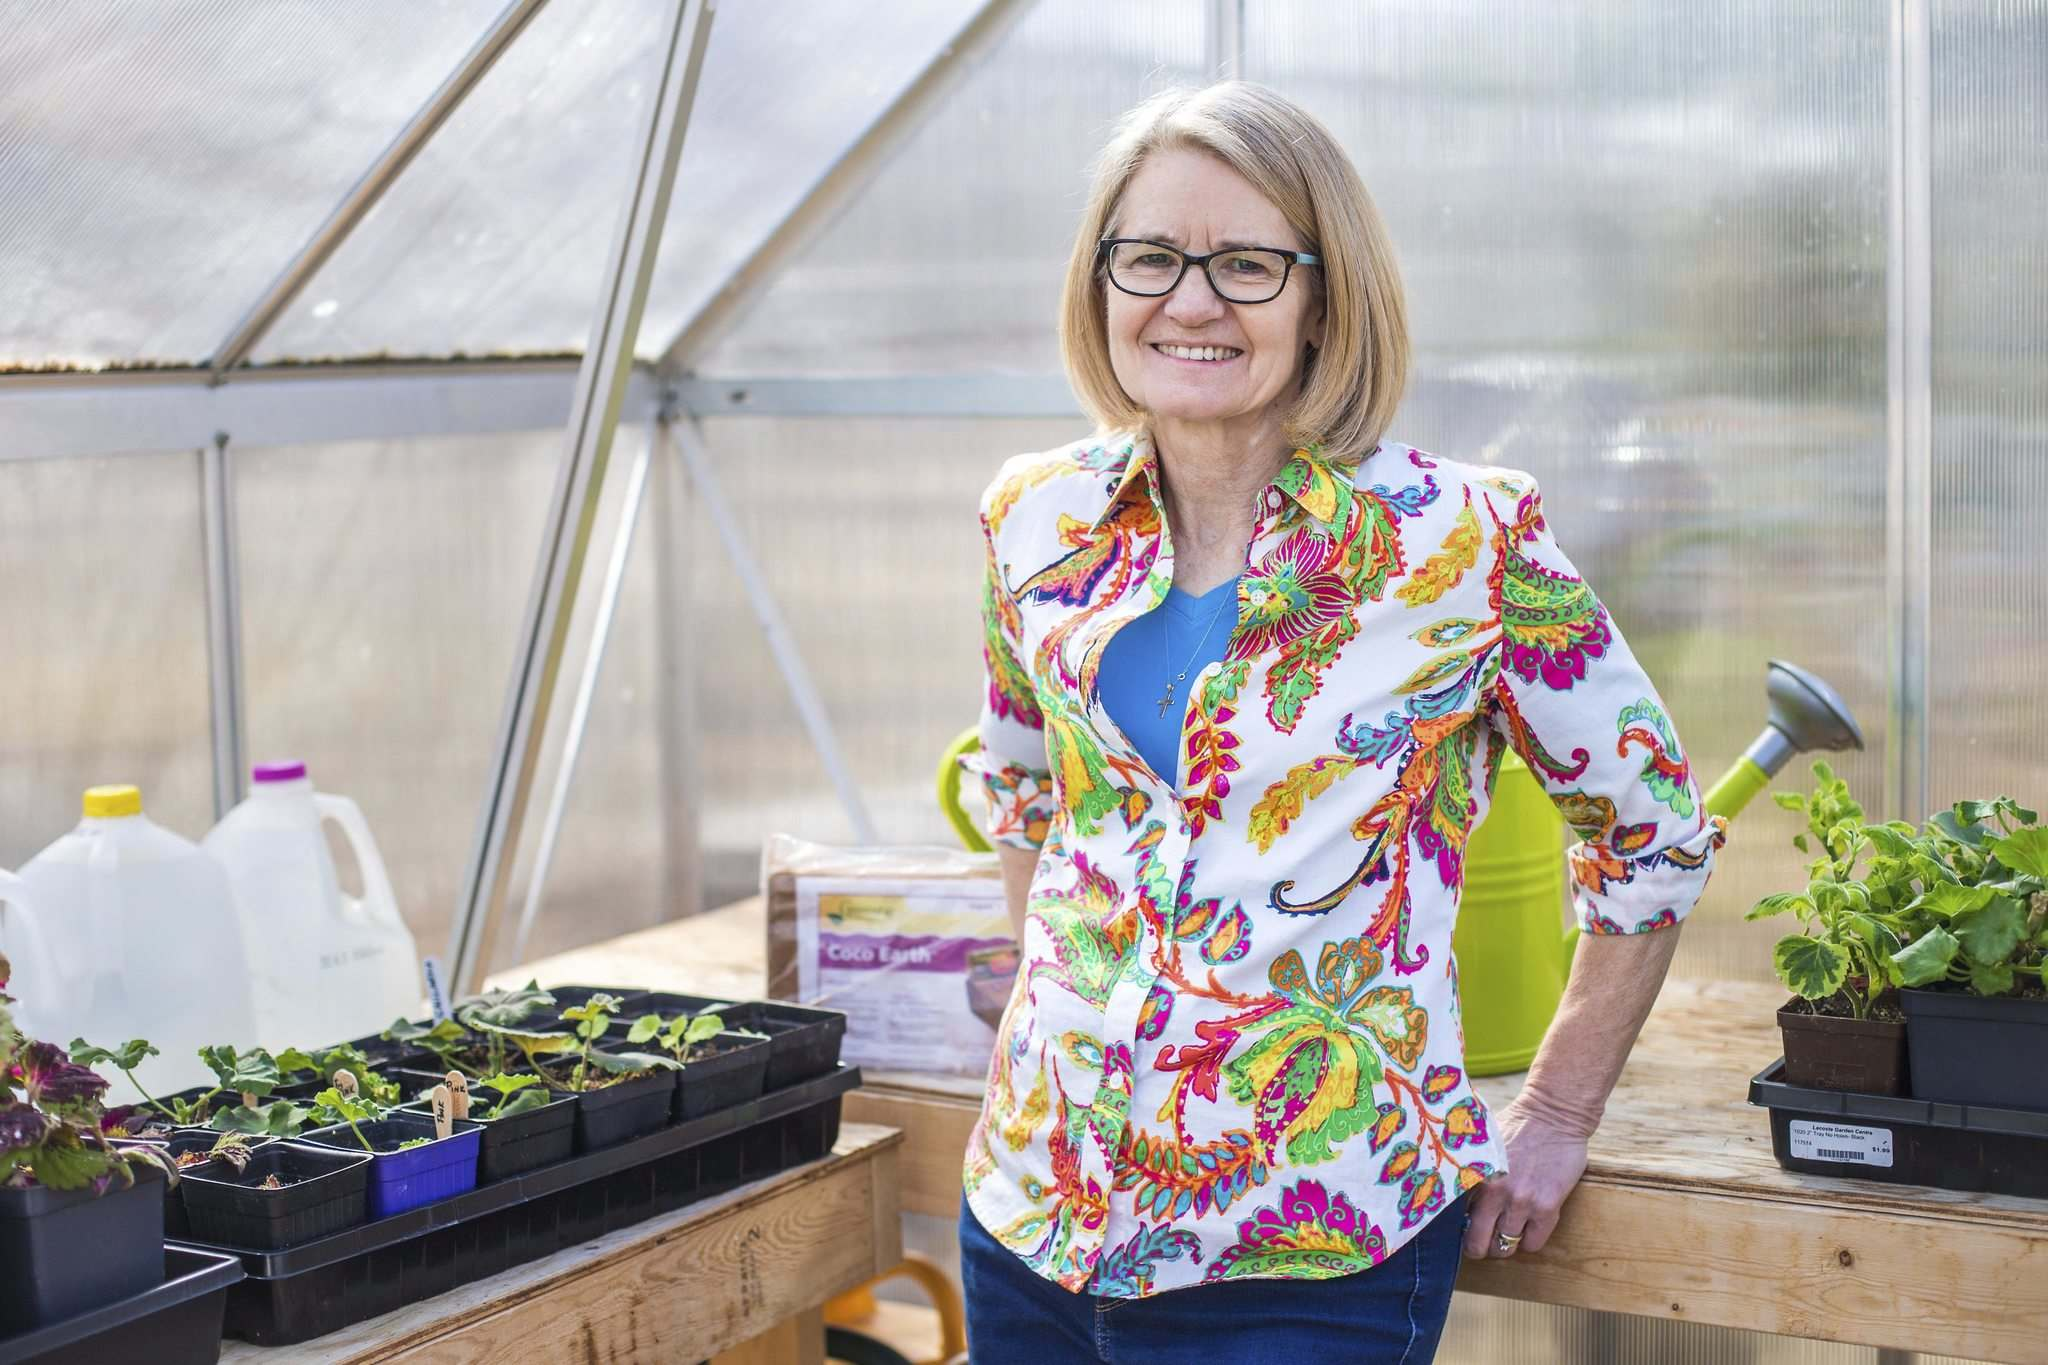 As gardener Janet Epp preps spring seeds she finds herself contemplating a new — hopefully more sustainable — way of doing things.